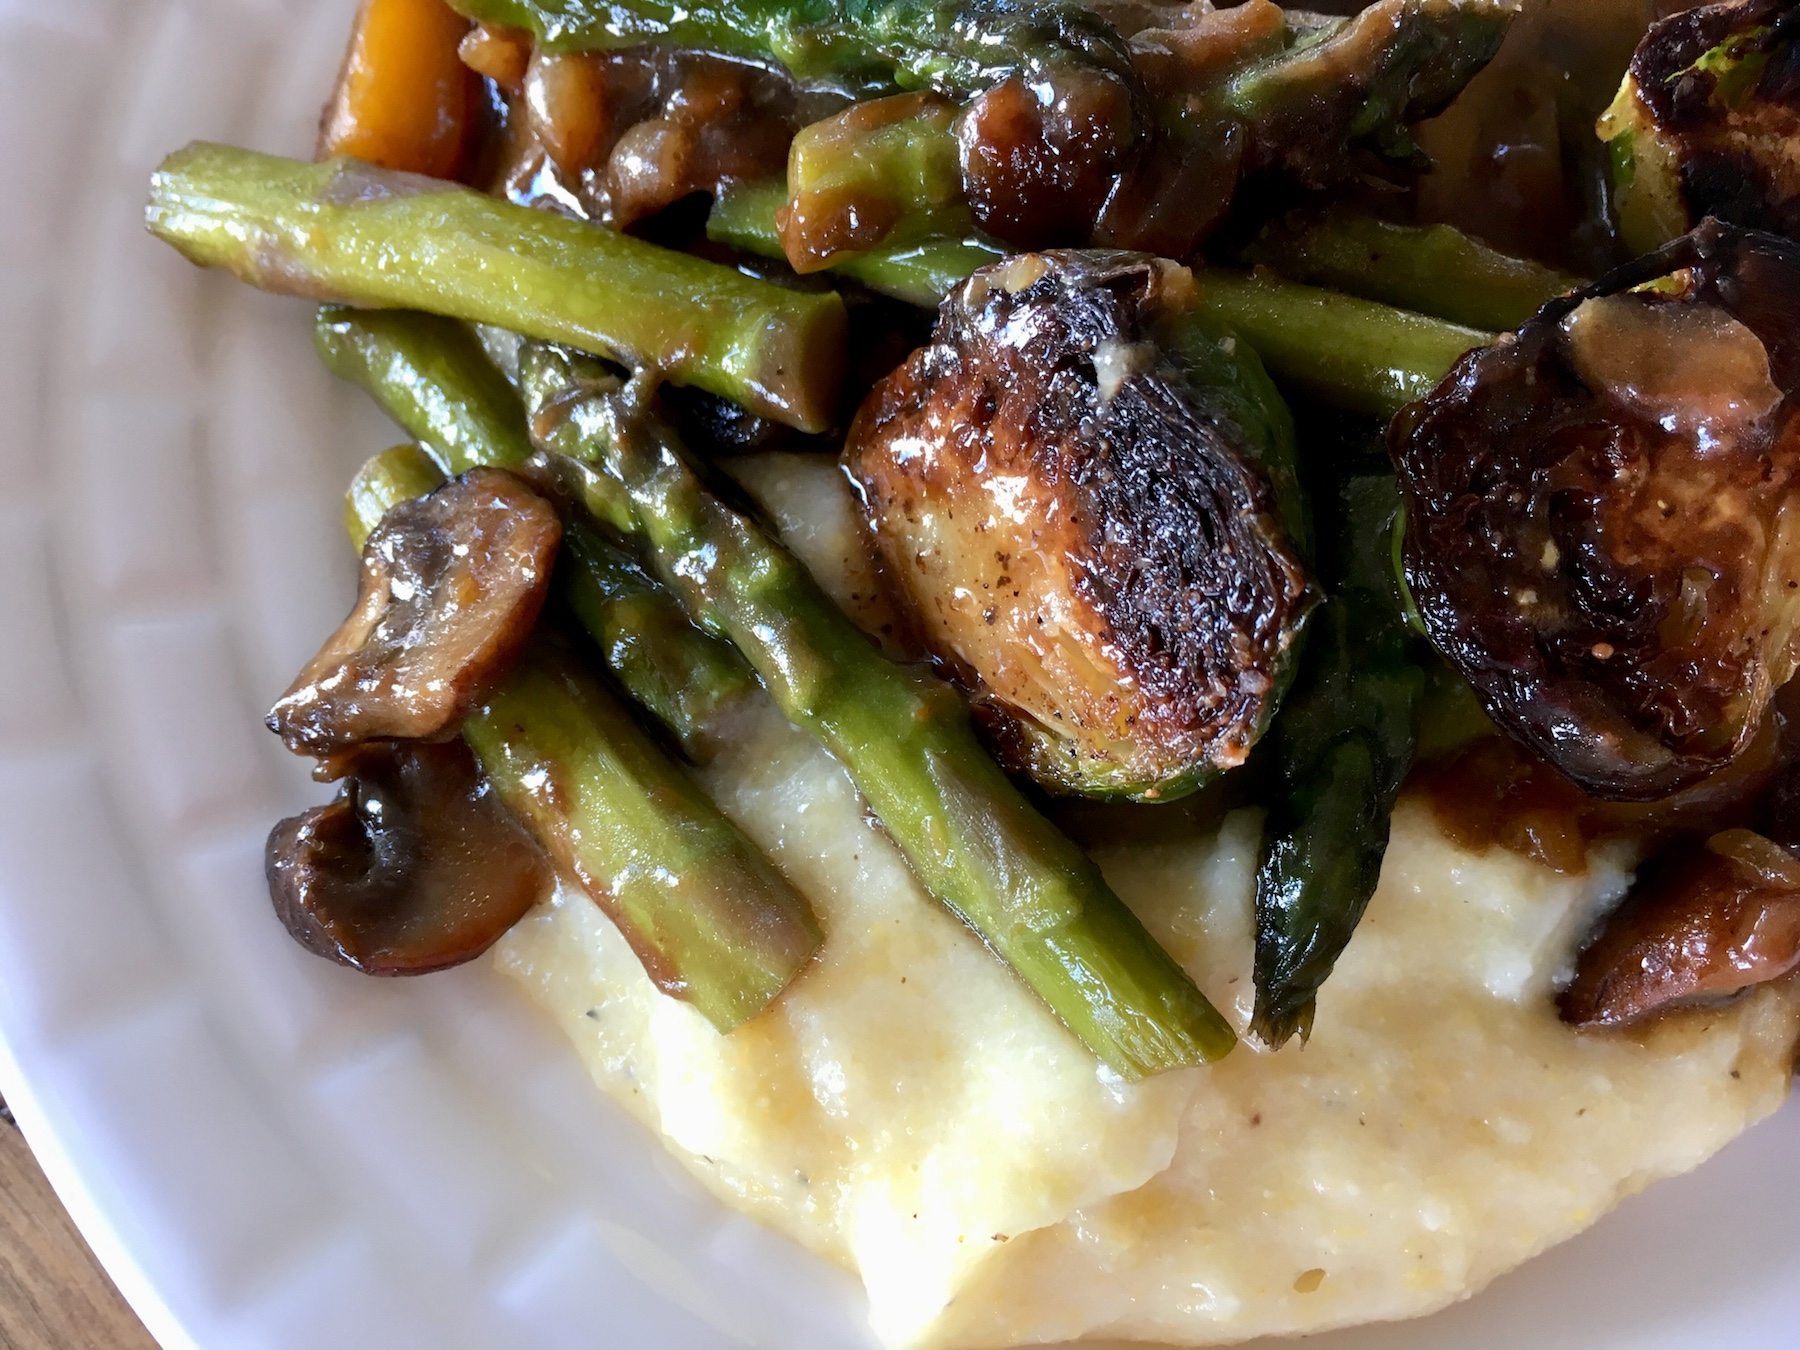 Cheesy Polenta with Roasted Veggies